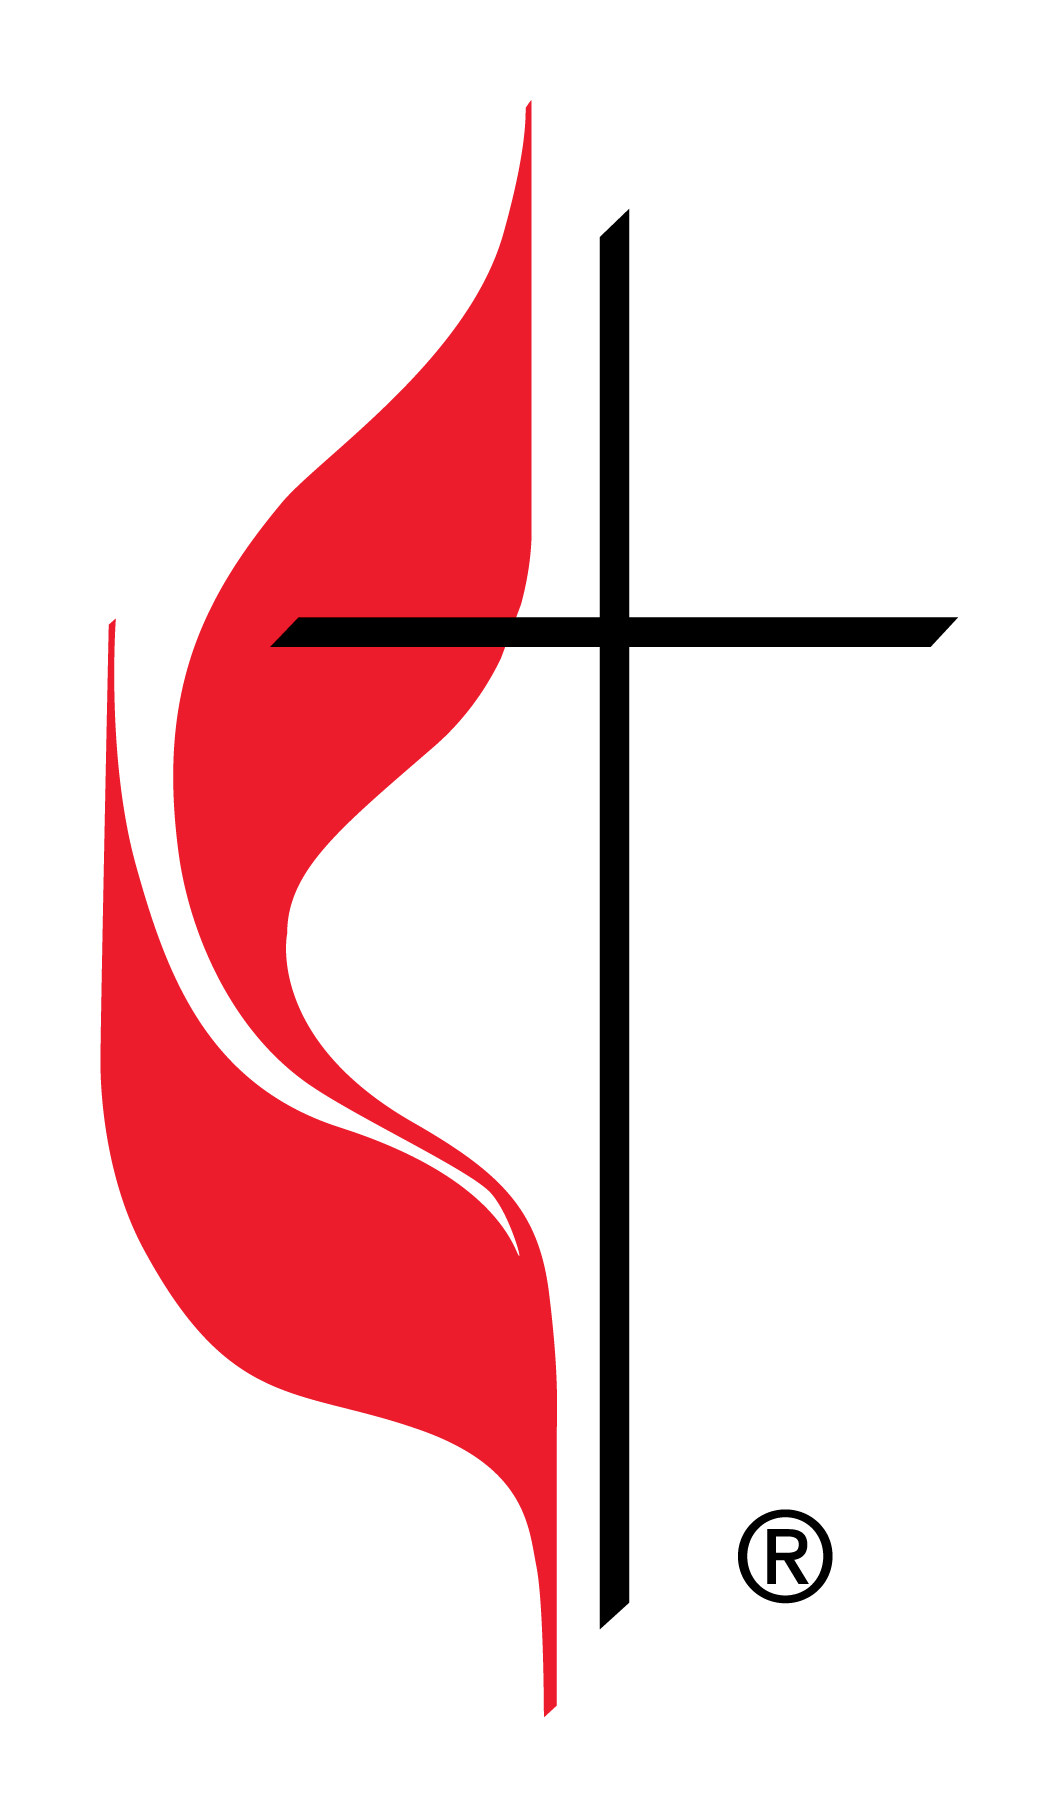 United methodist church logo png. Cross and flame the